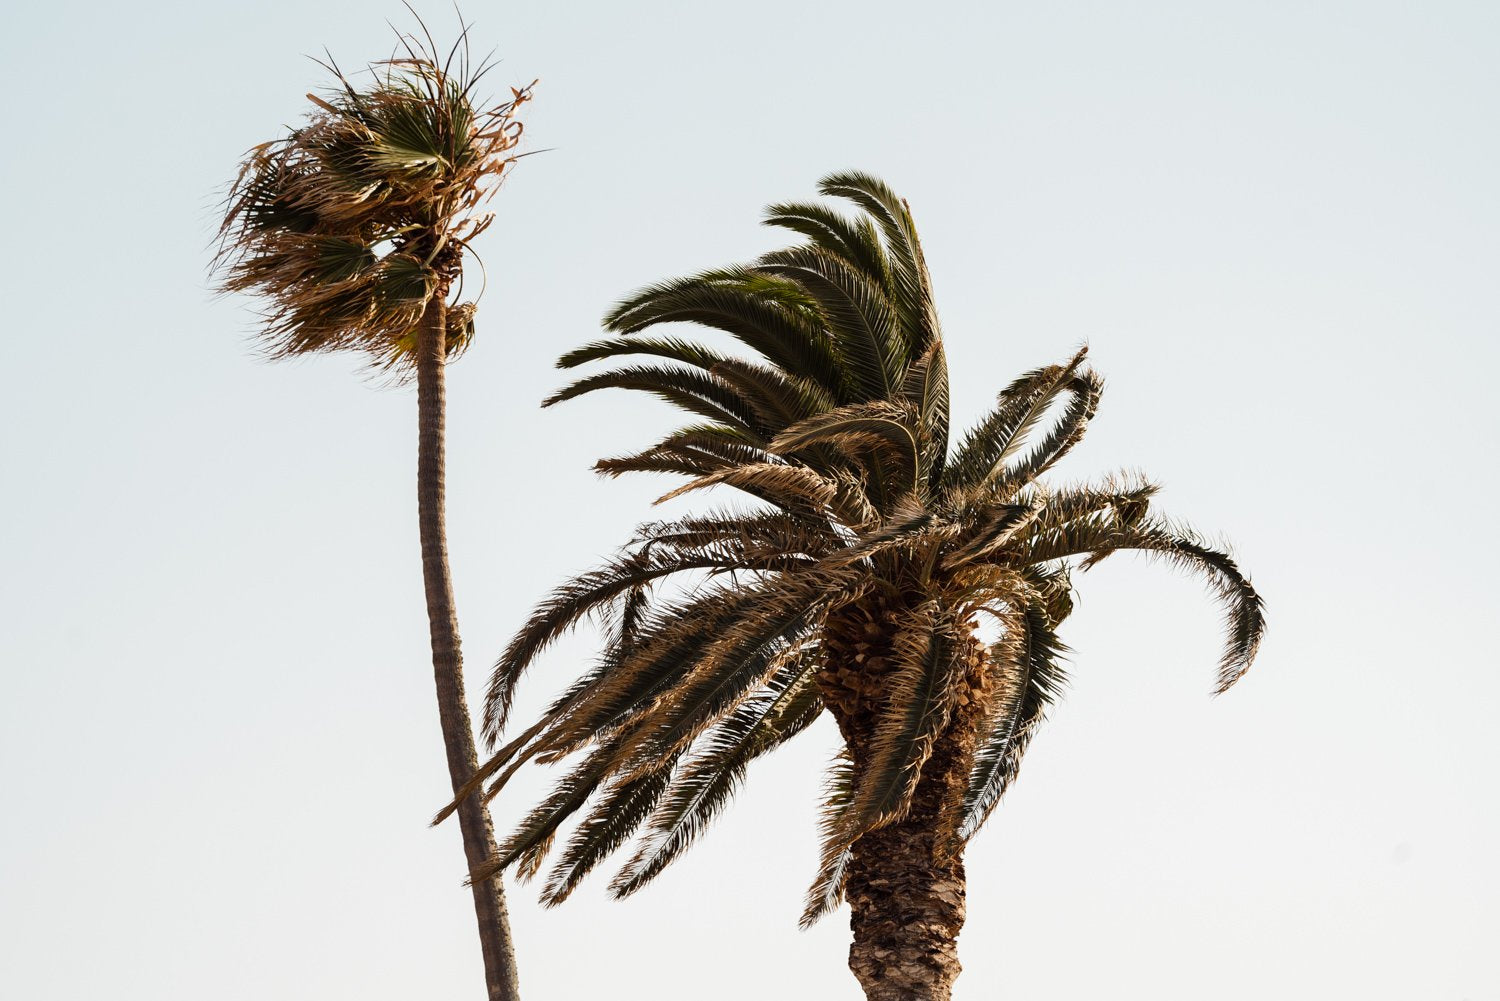 Two palm trees blowing in the wind at Ponta da Piedade